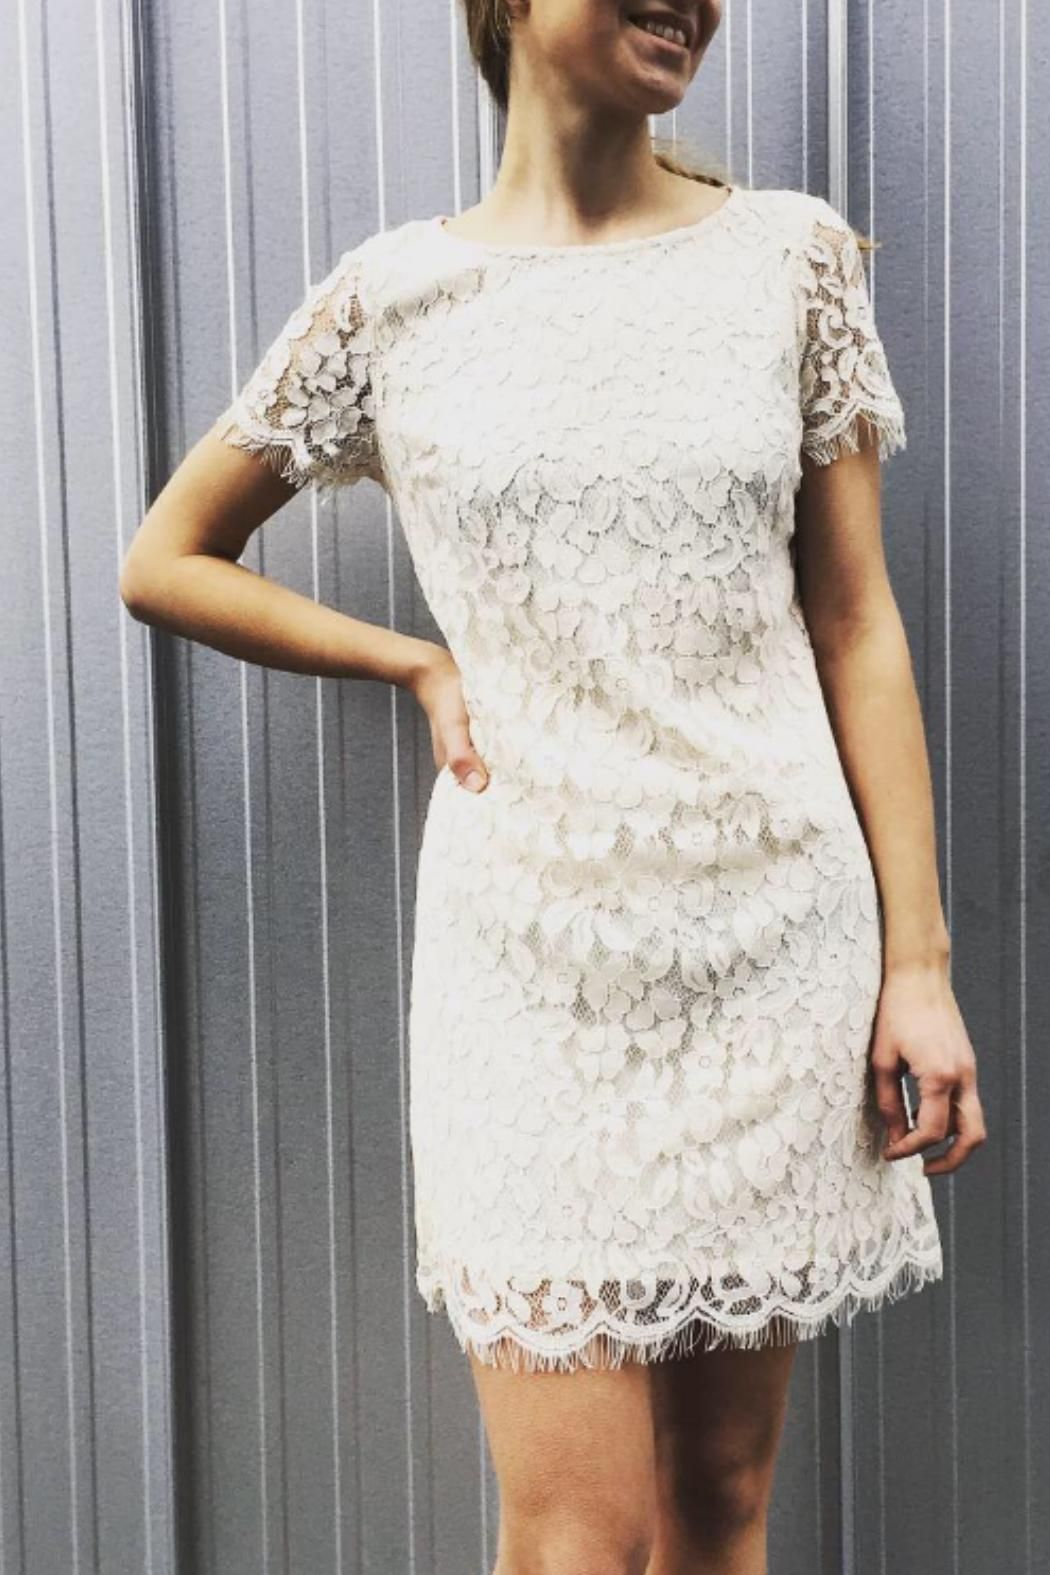 Off White Beige Lace Overlay Dress With Matching Lining No Lining At Cap Sleeves Not Fitted Around Waist Lace Overl Lace Overlay Dress Dresses Dress Outfits [ 1575 x 1050 Pixel ]